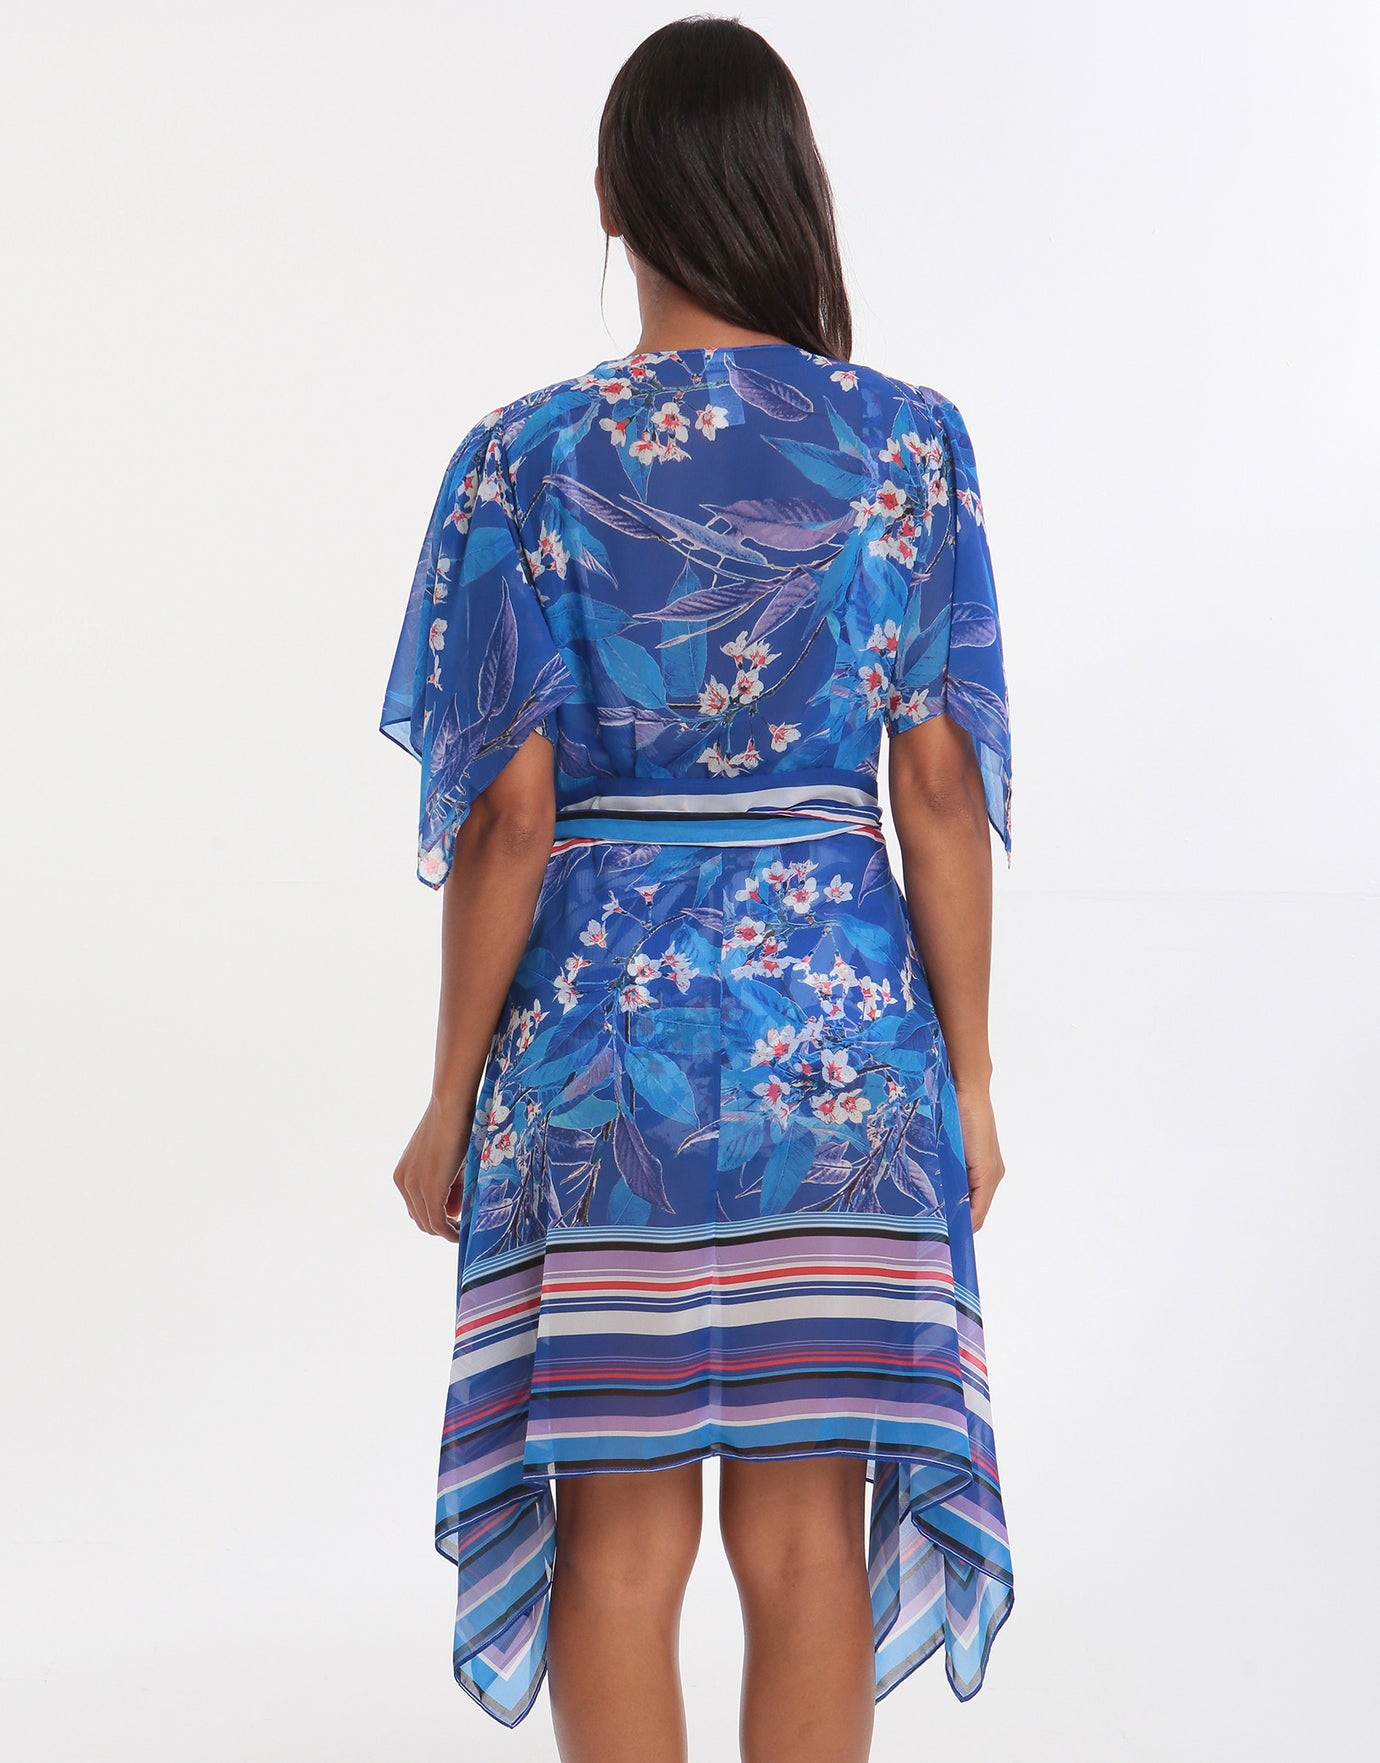 Gottex Sakura Beach Dress - Multi Blue